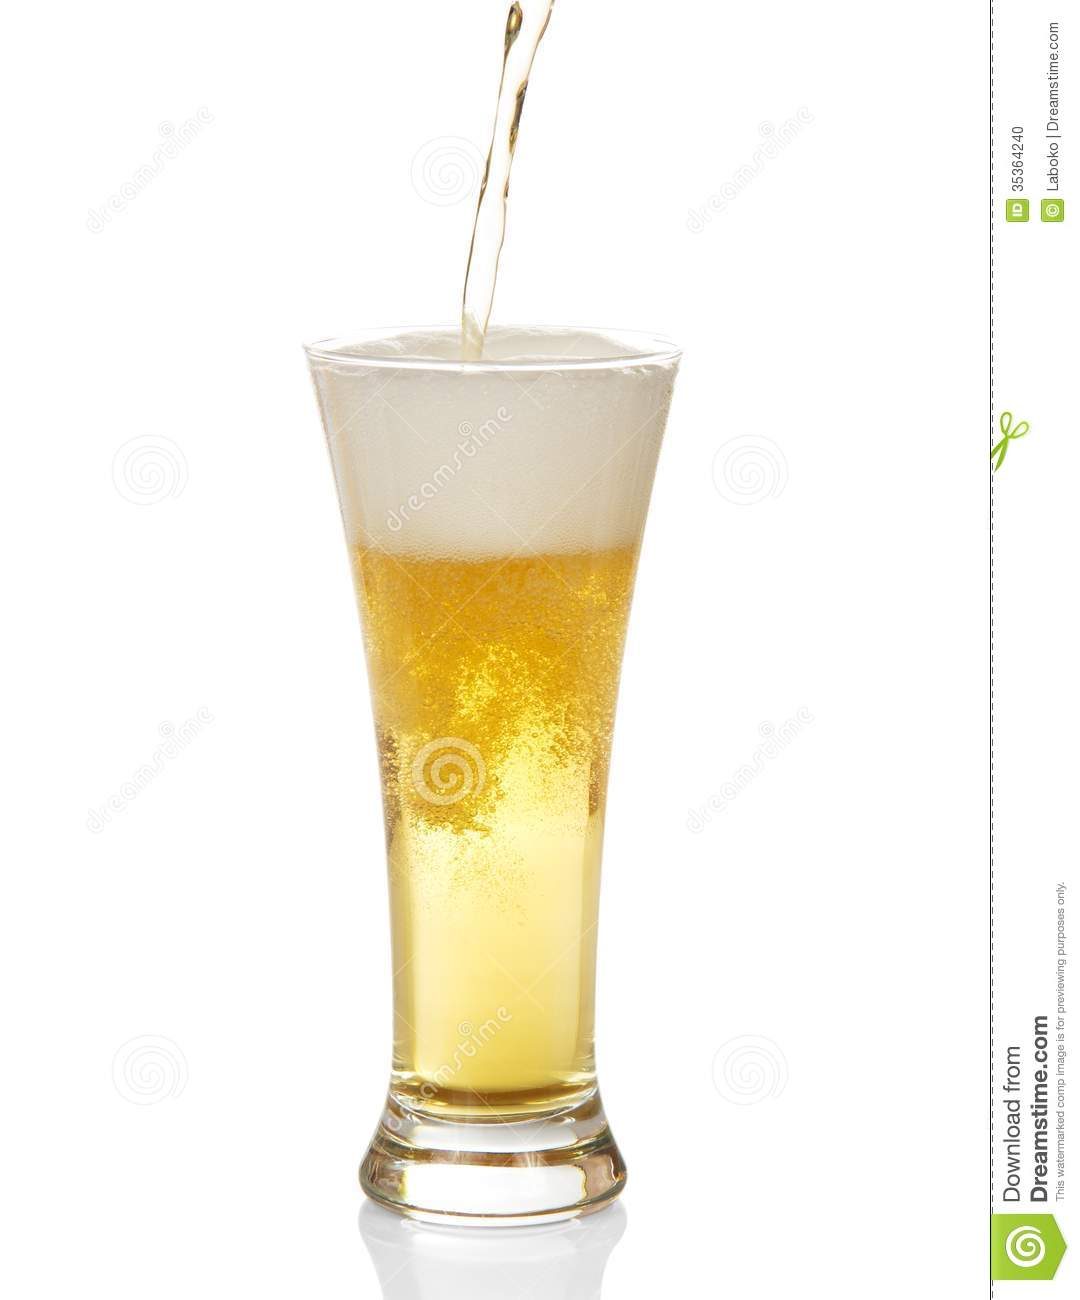 beer pouring into glass stock photo image of traditional 35364240